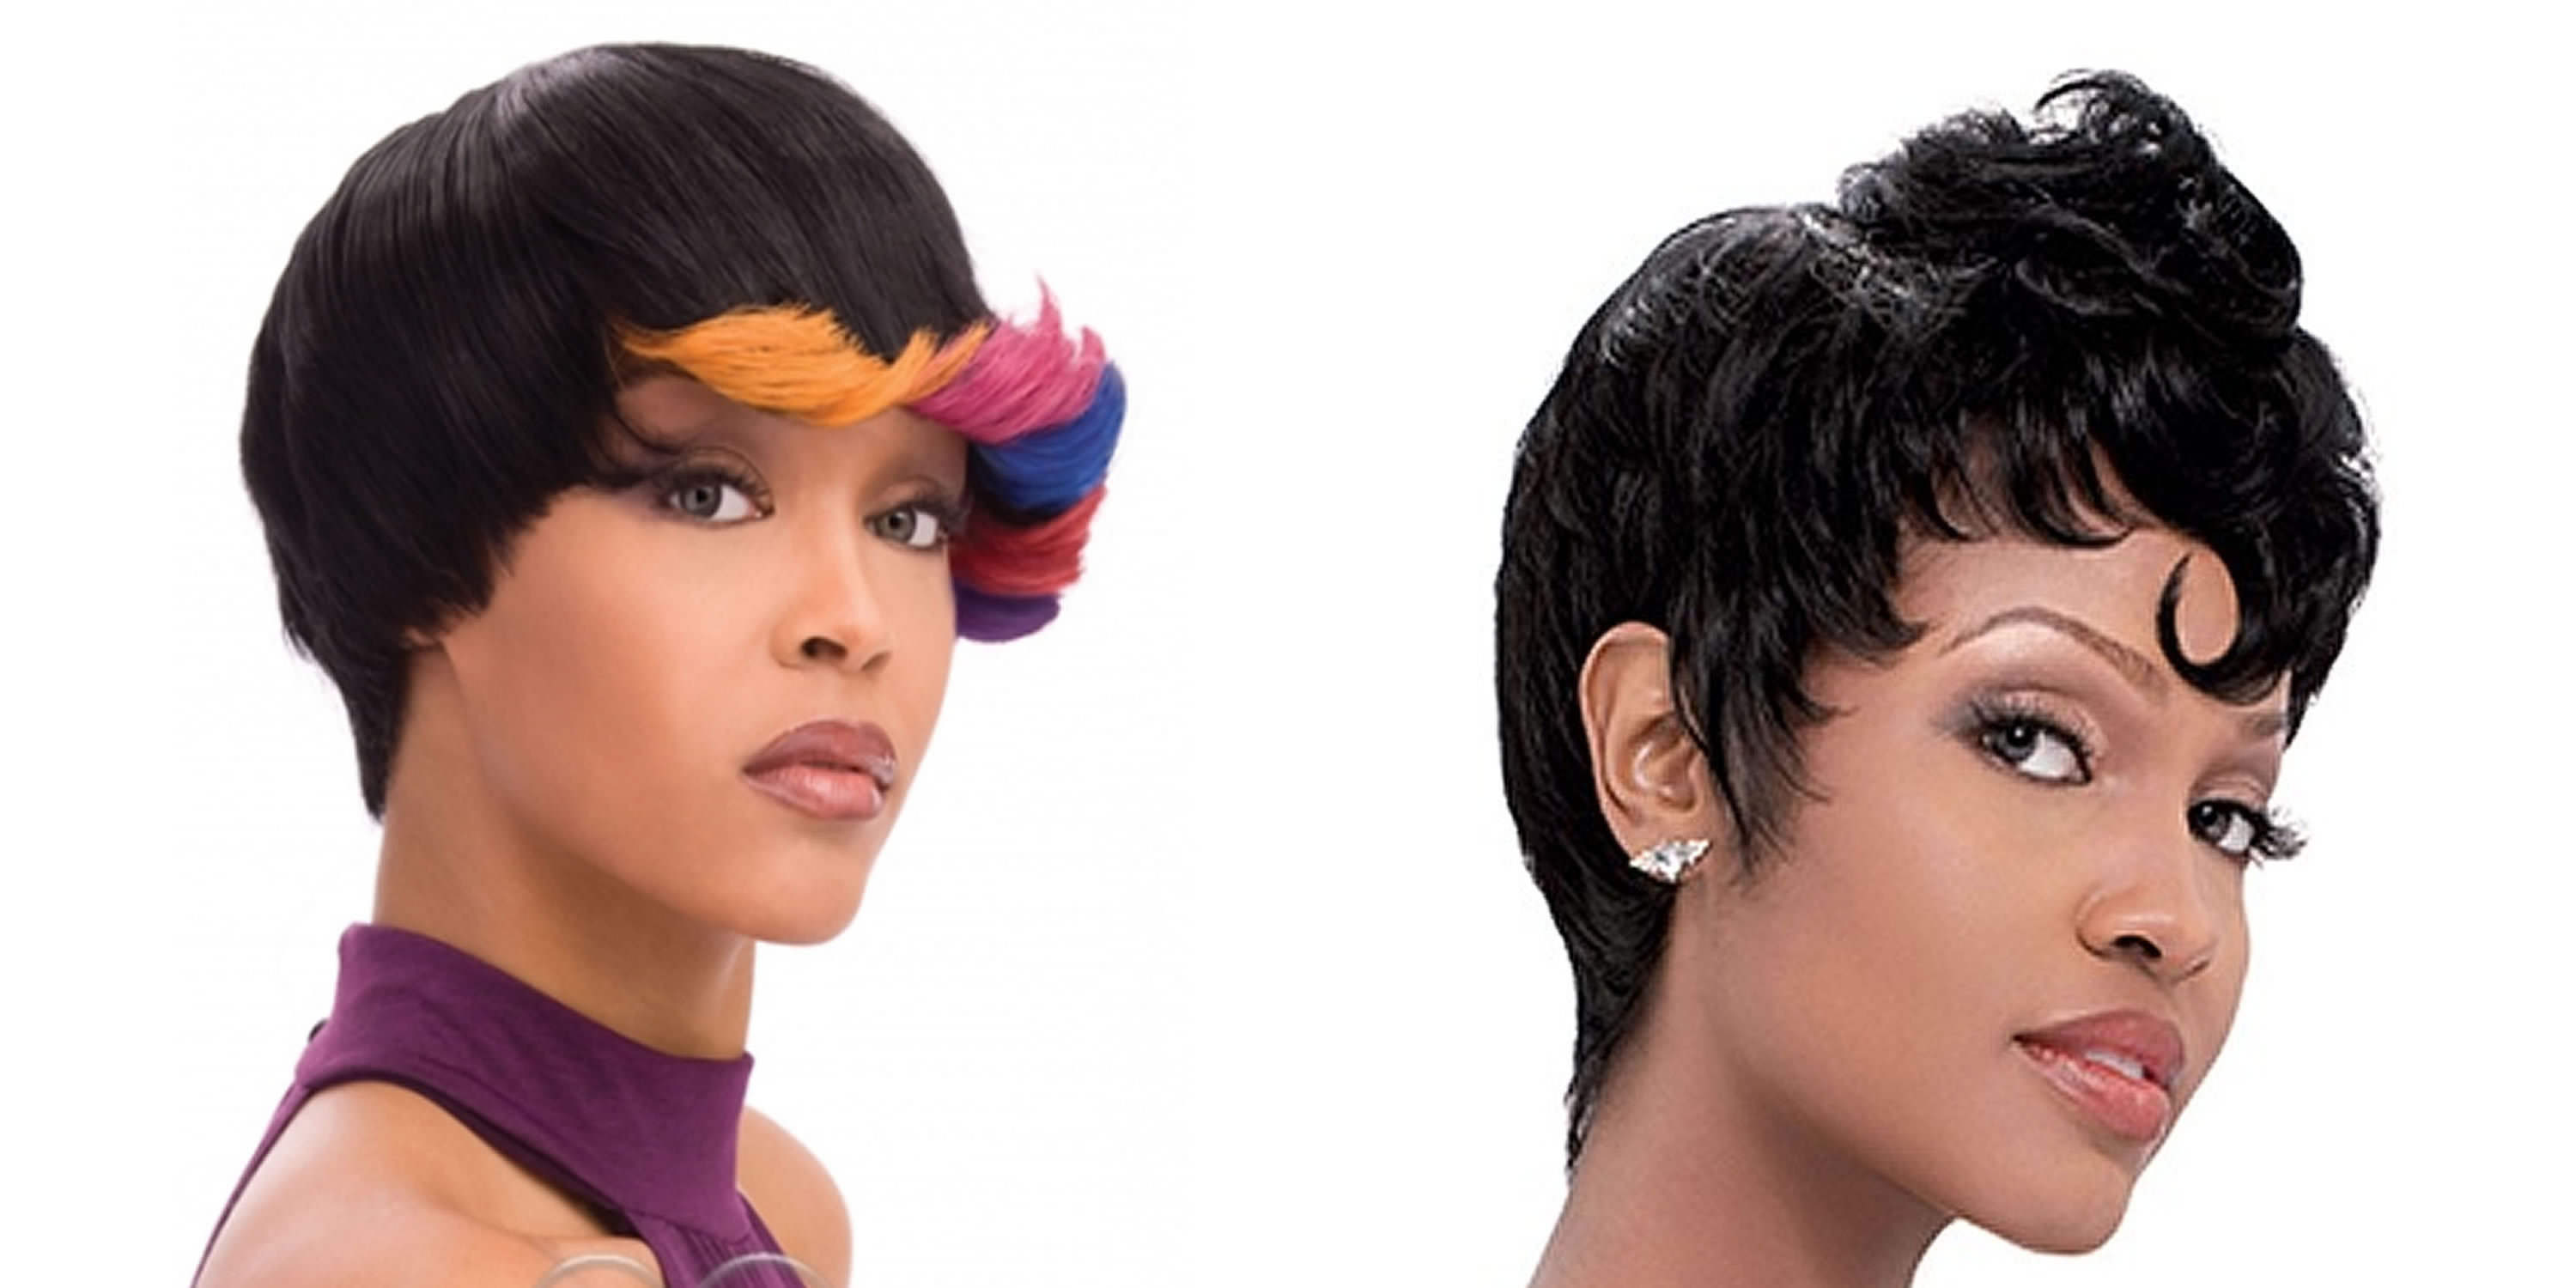 Pixie Hairstyles For Black Women – 60 Cool Short Haircuts For 2017 Regarding Short Haircuts On Black Women (View 10 of 25)